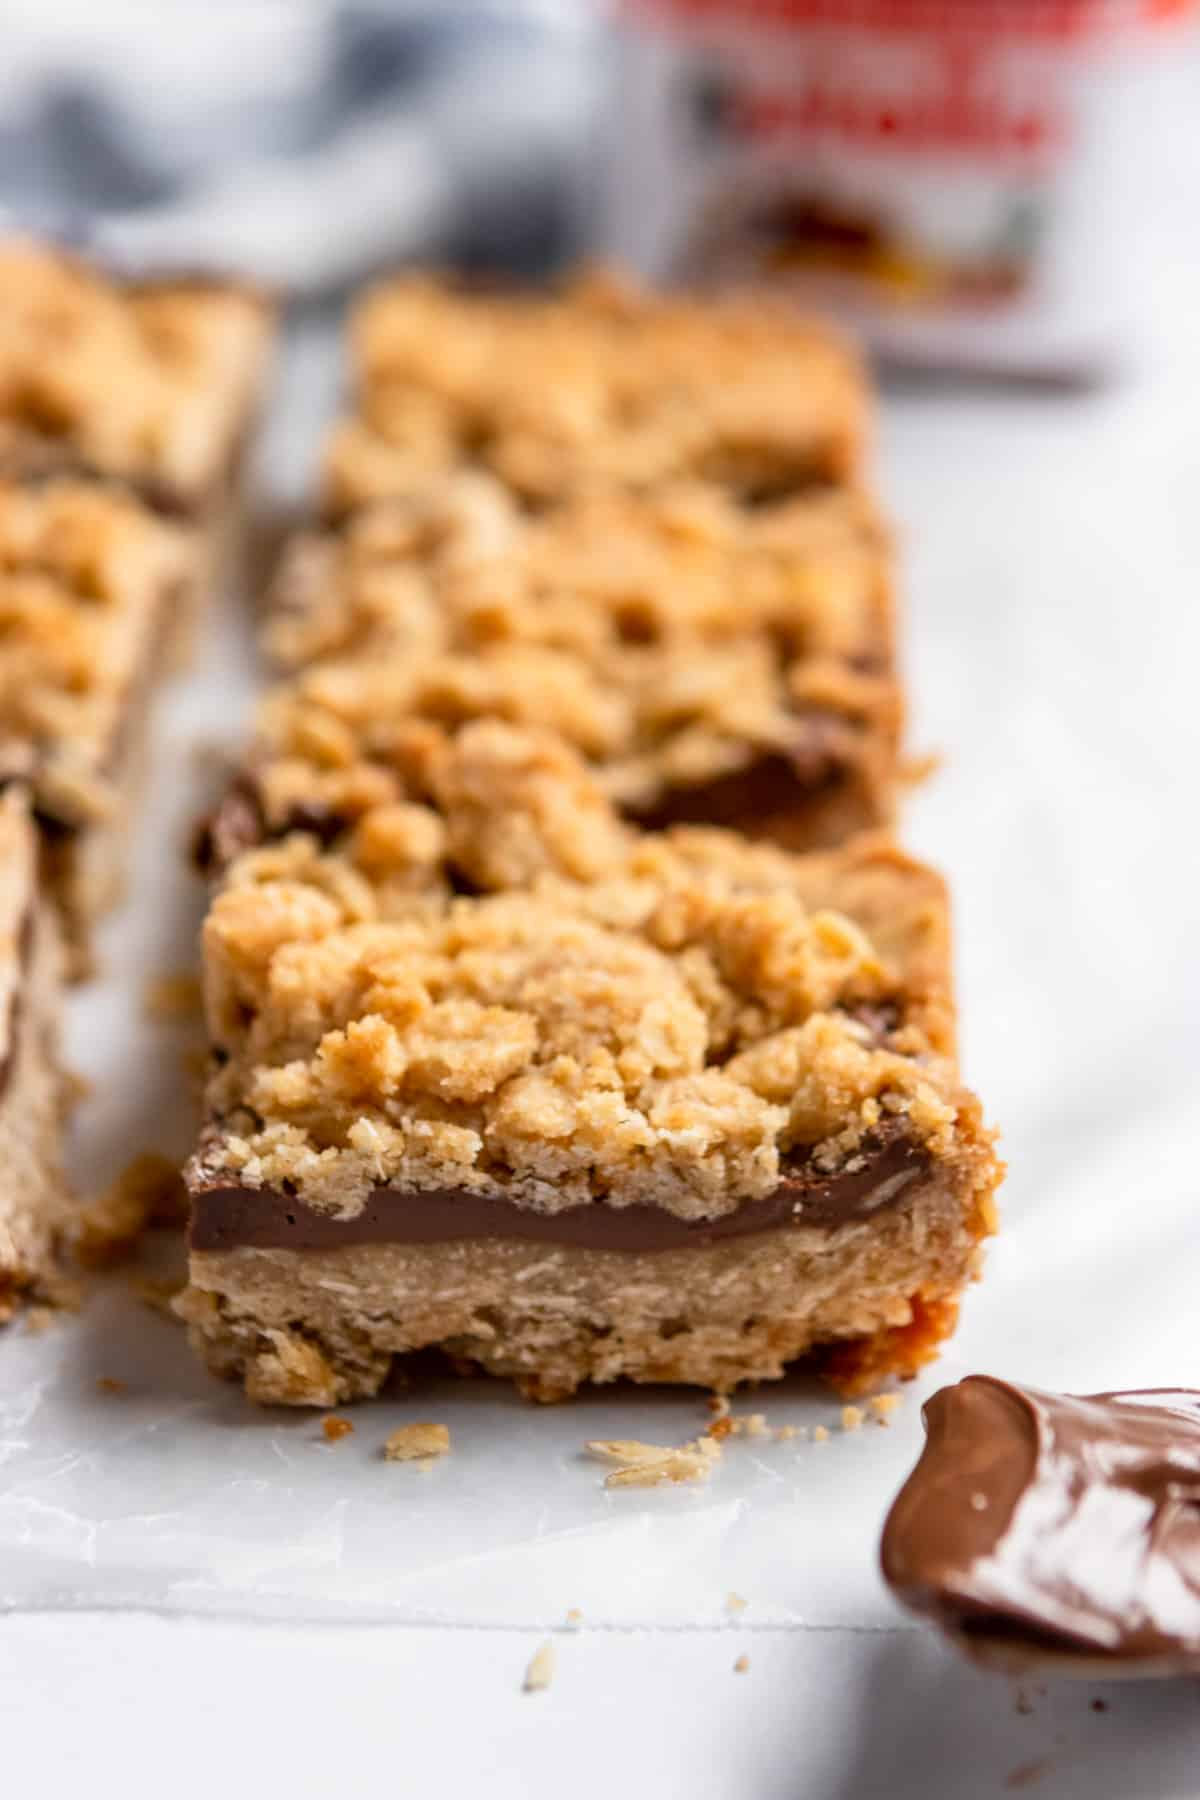 Oat crumble bar with spoon of Nutella.